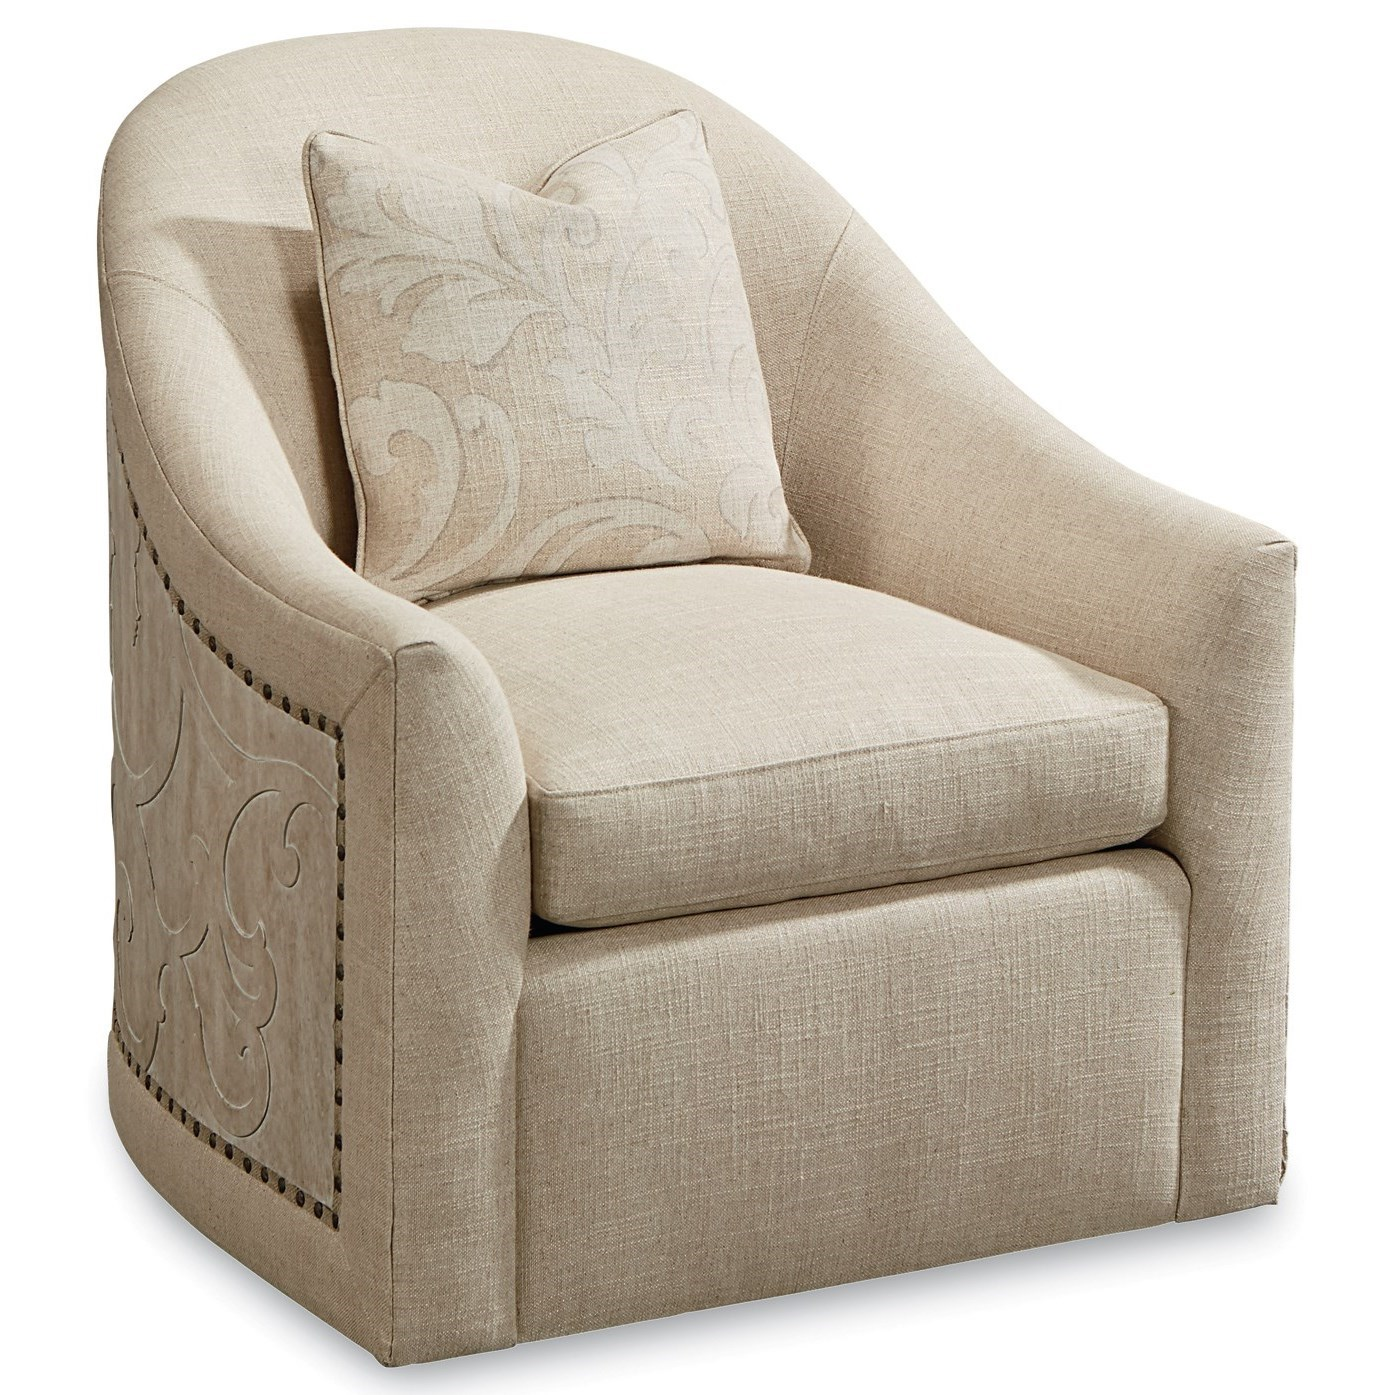 Arch Salvage Coulter Swivel Chair by A.R.T. Furniture Inc at Baer's Furniture